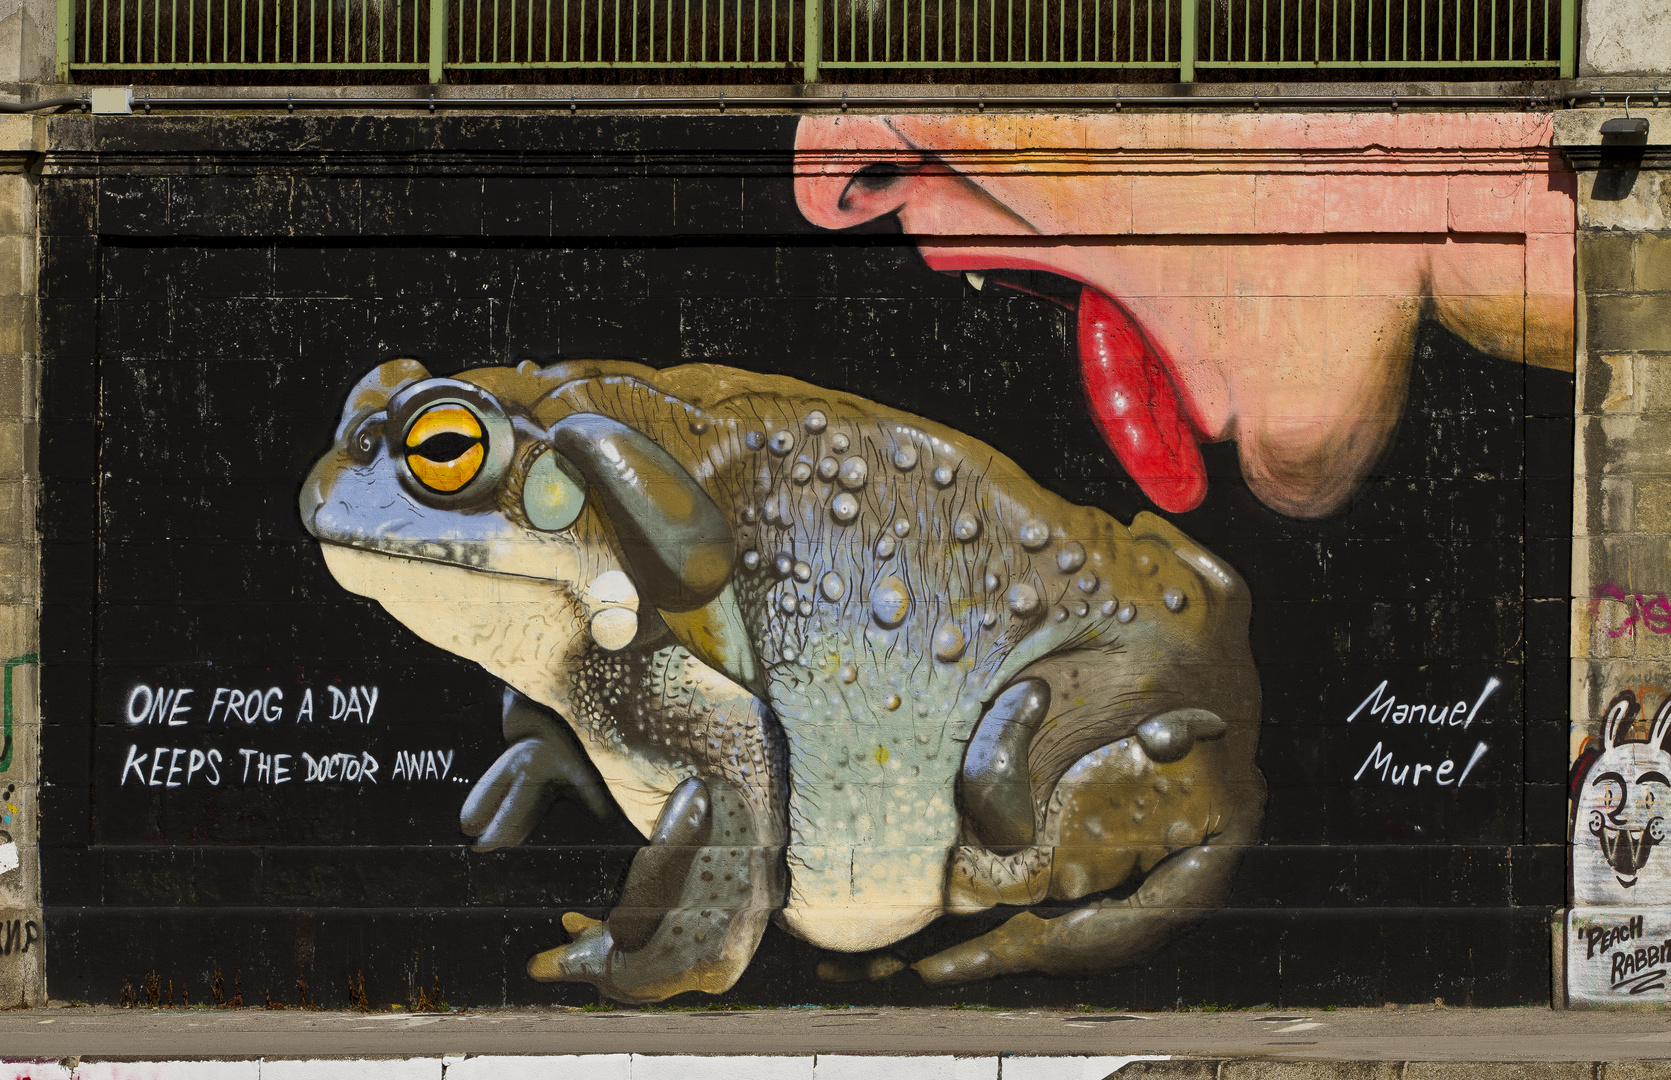 One Frog a Day...